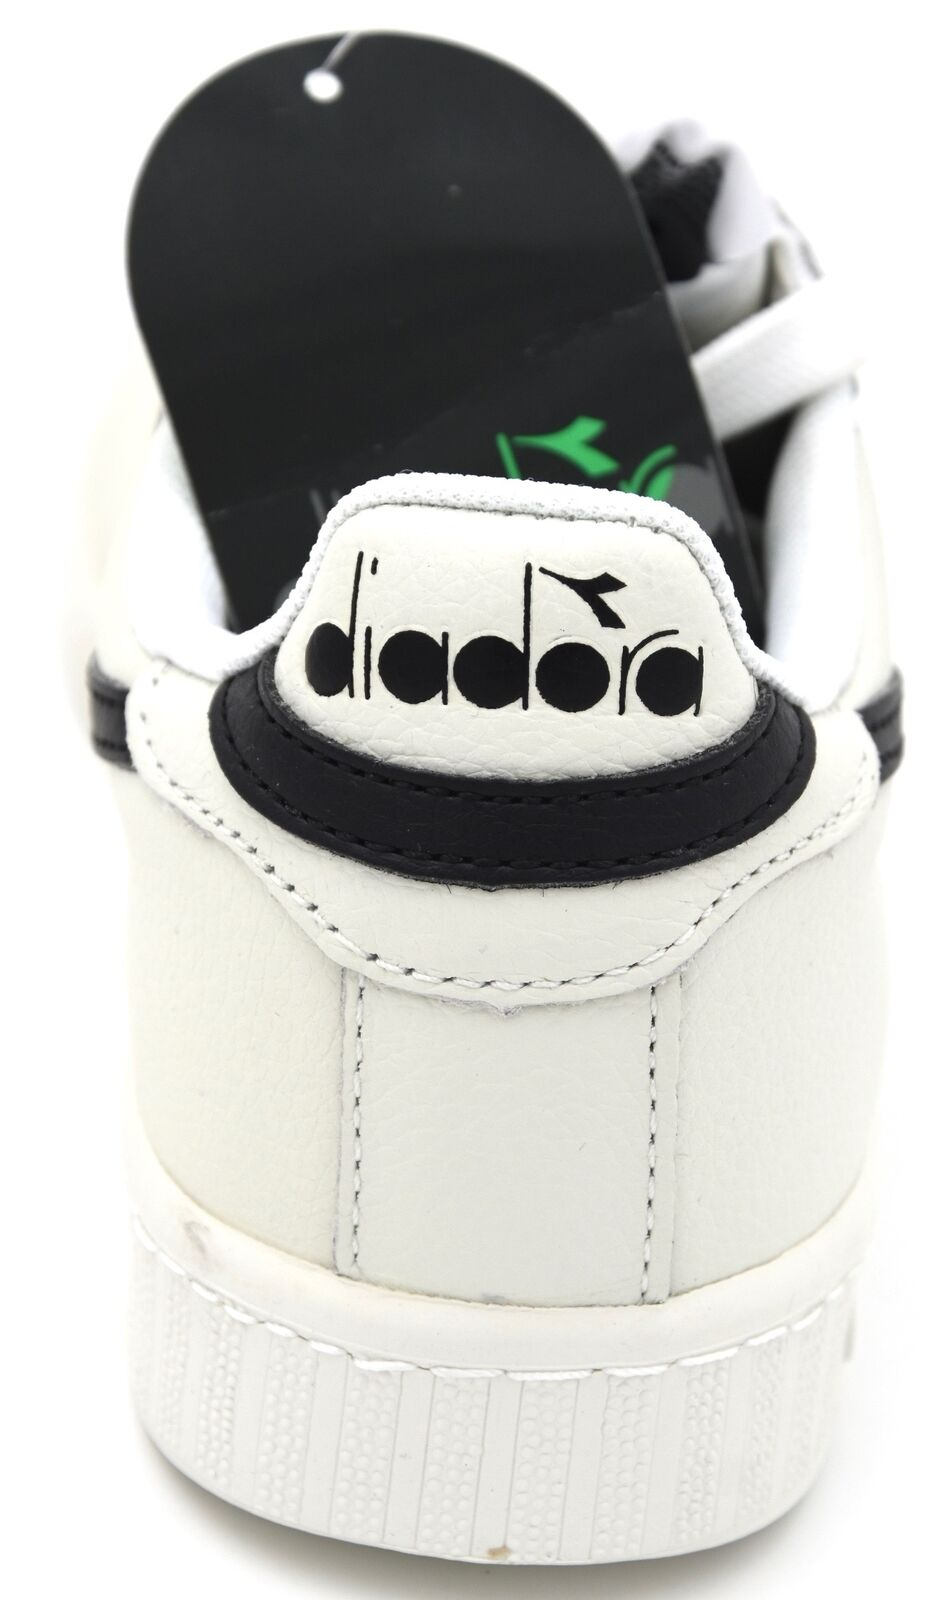 DIADORA WOMAN SNEAKER SHOES FREE TIME CODE CODE CODE 501.172526 01 C3159 GAME L LOW 8f9ce4